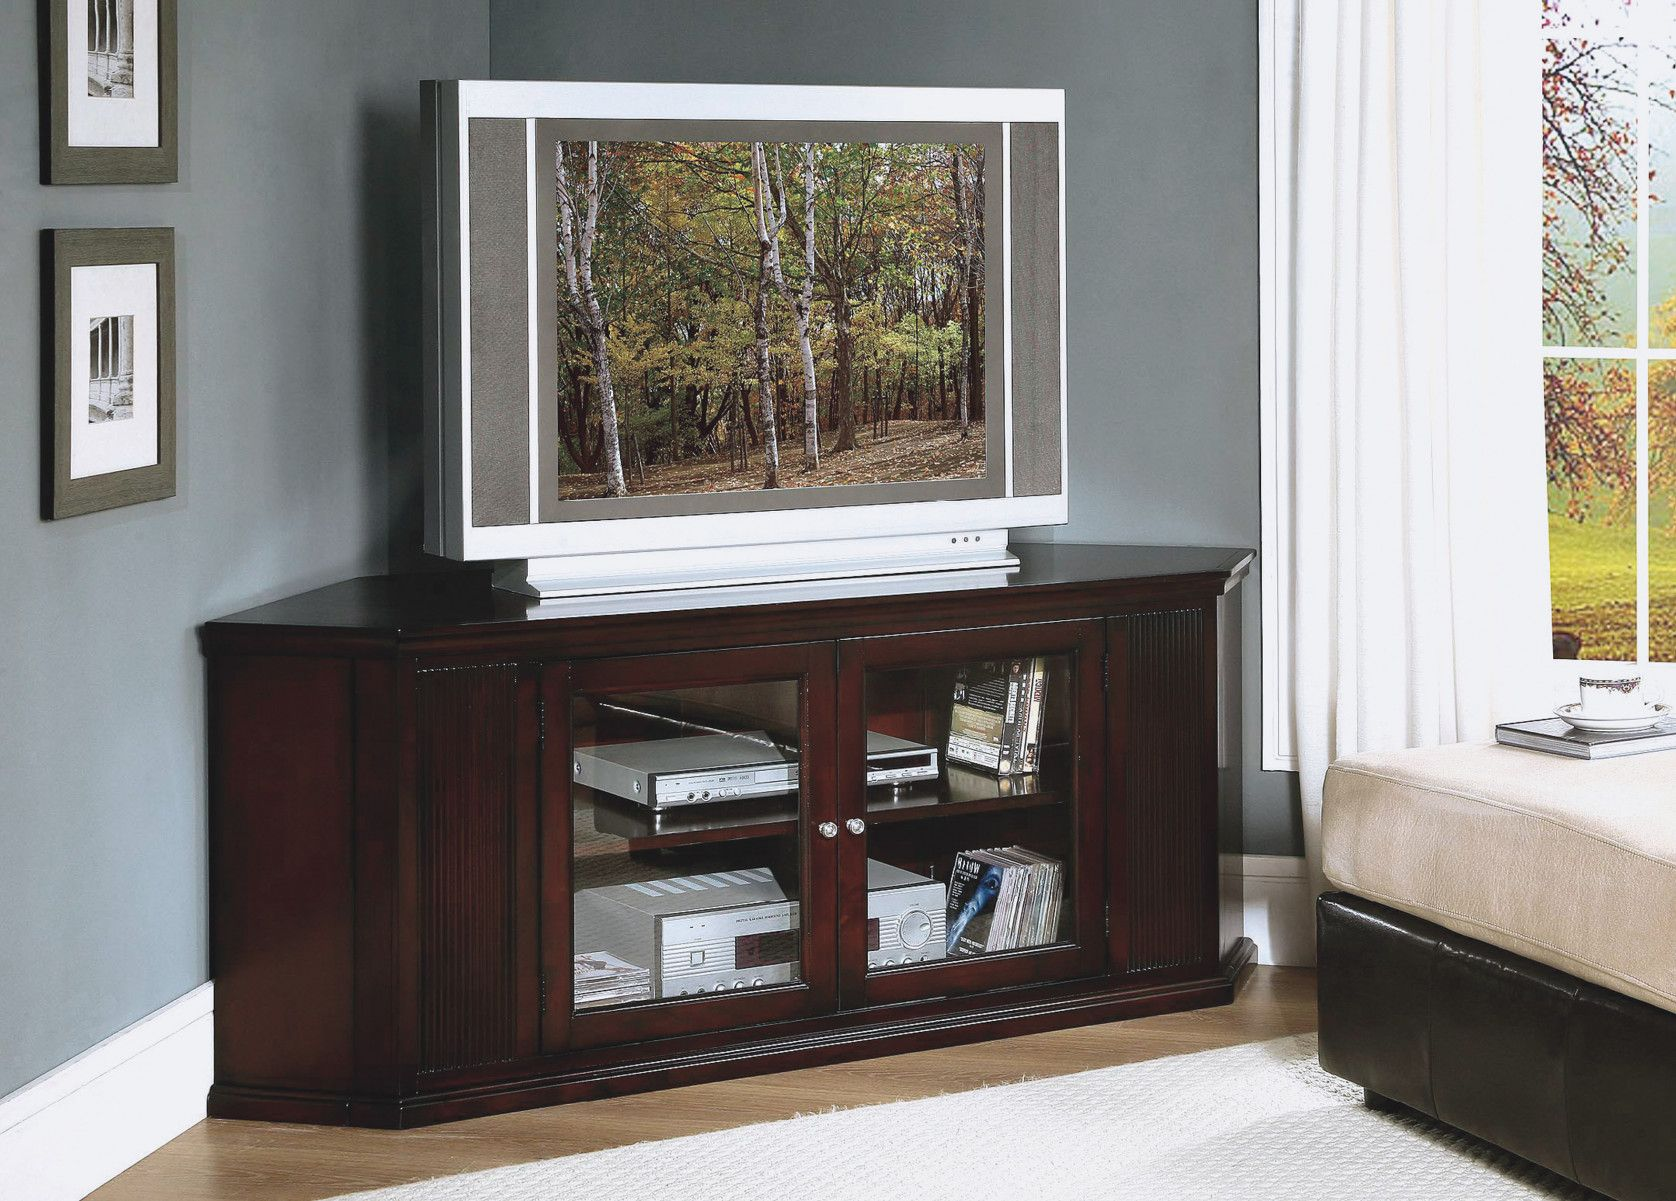 77 Corner Tv Cabinets For Flat Screens With Doors Small Kitchen